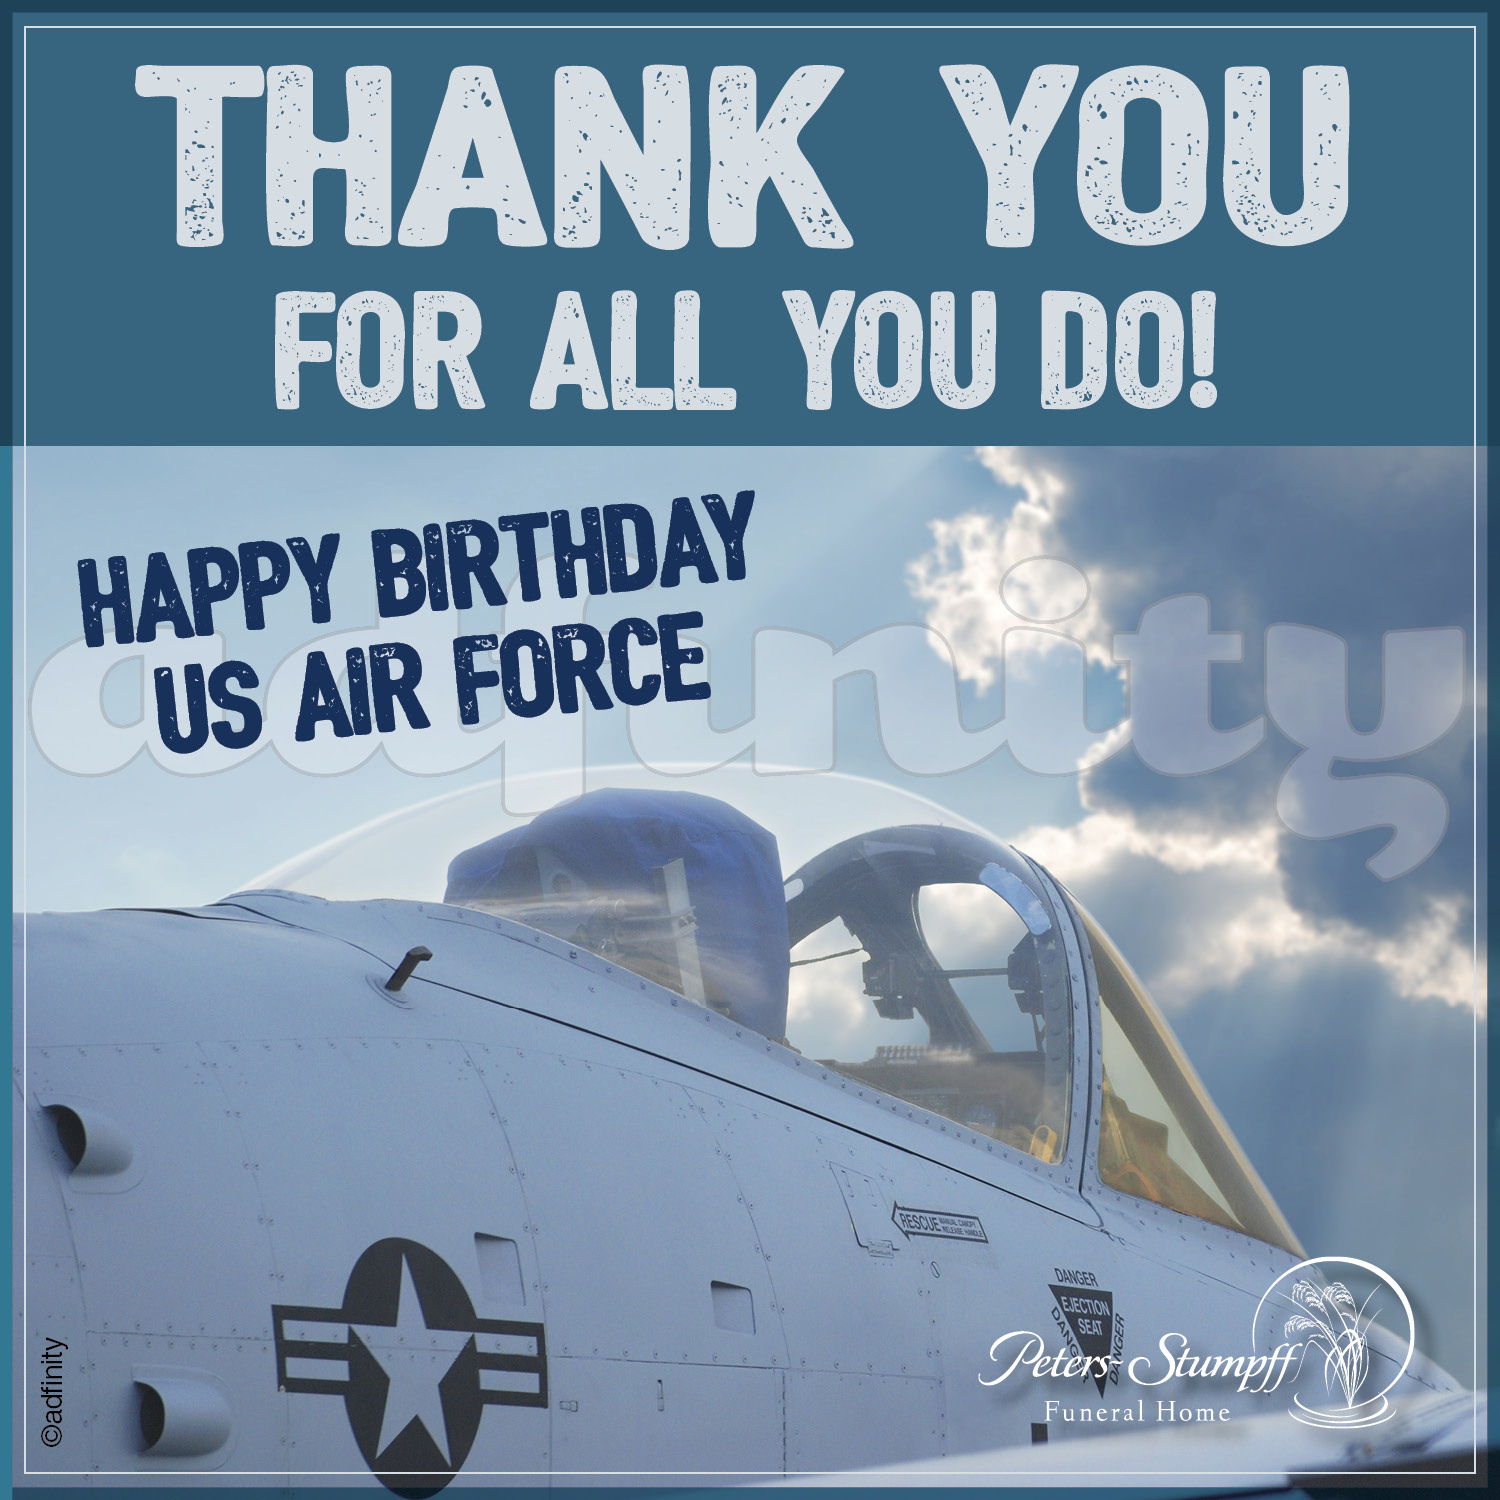 happy birthday air force ; 091503%25C2%25A0Thank+you+for+all+you+do%2521+Happy+birthday+US+Air+Force+Air+Force+Birthday+Facebook+meme